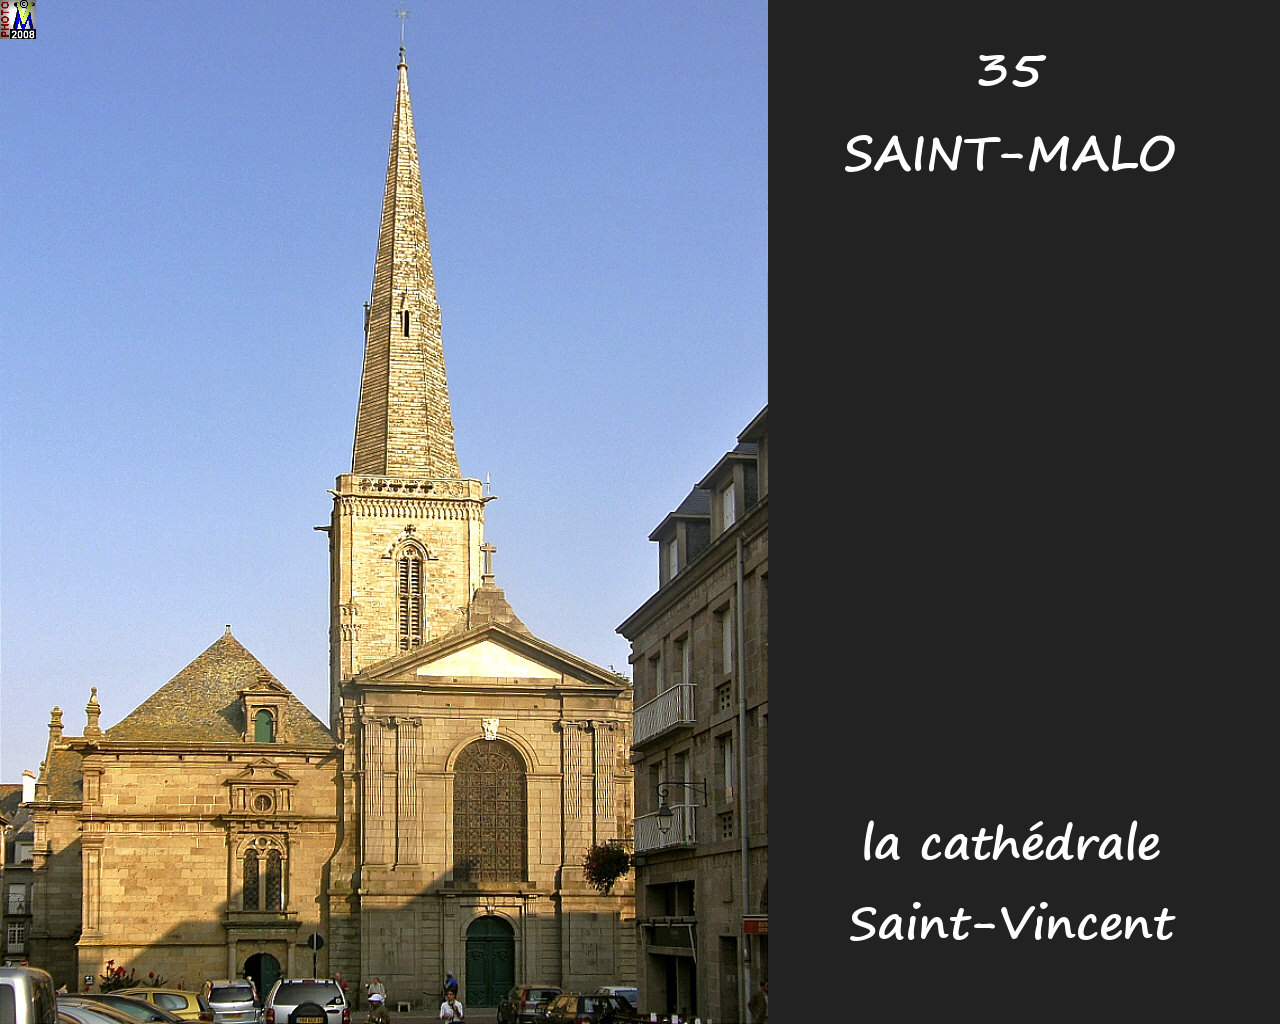 35StMALO_cathedrale_100.jpg